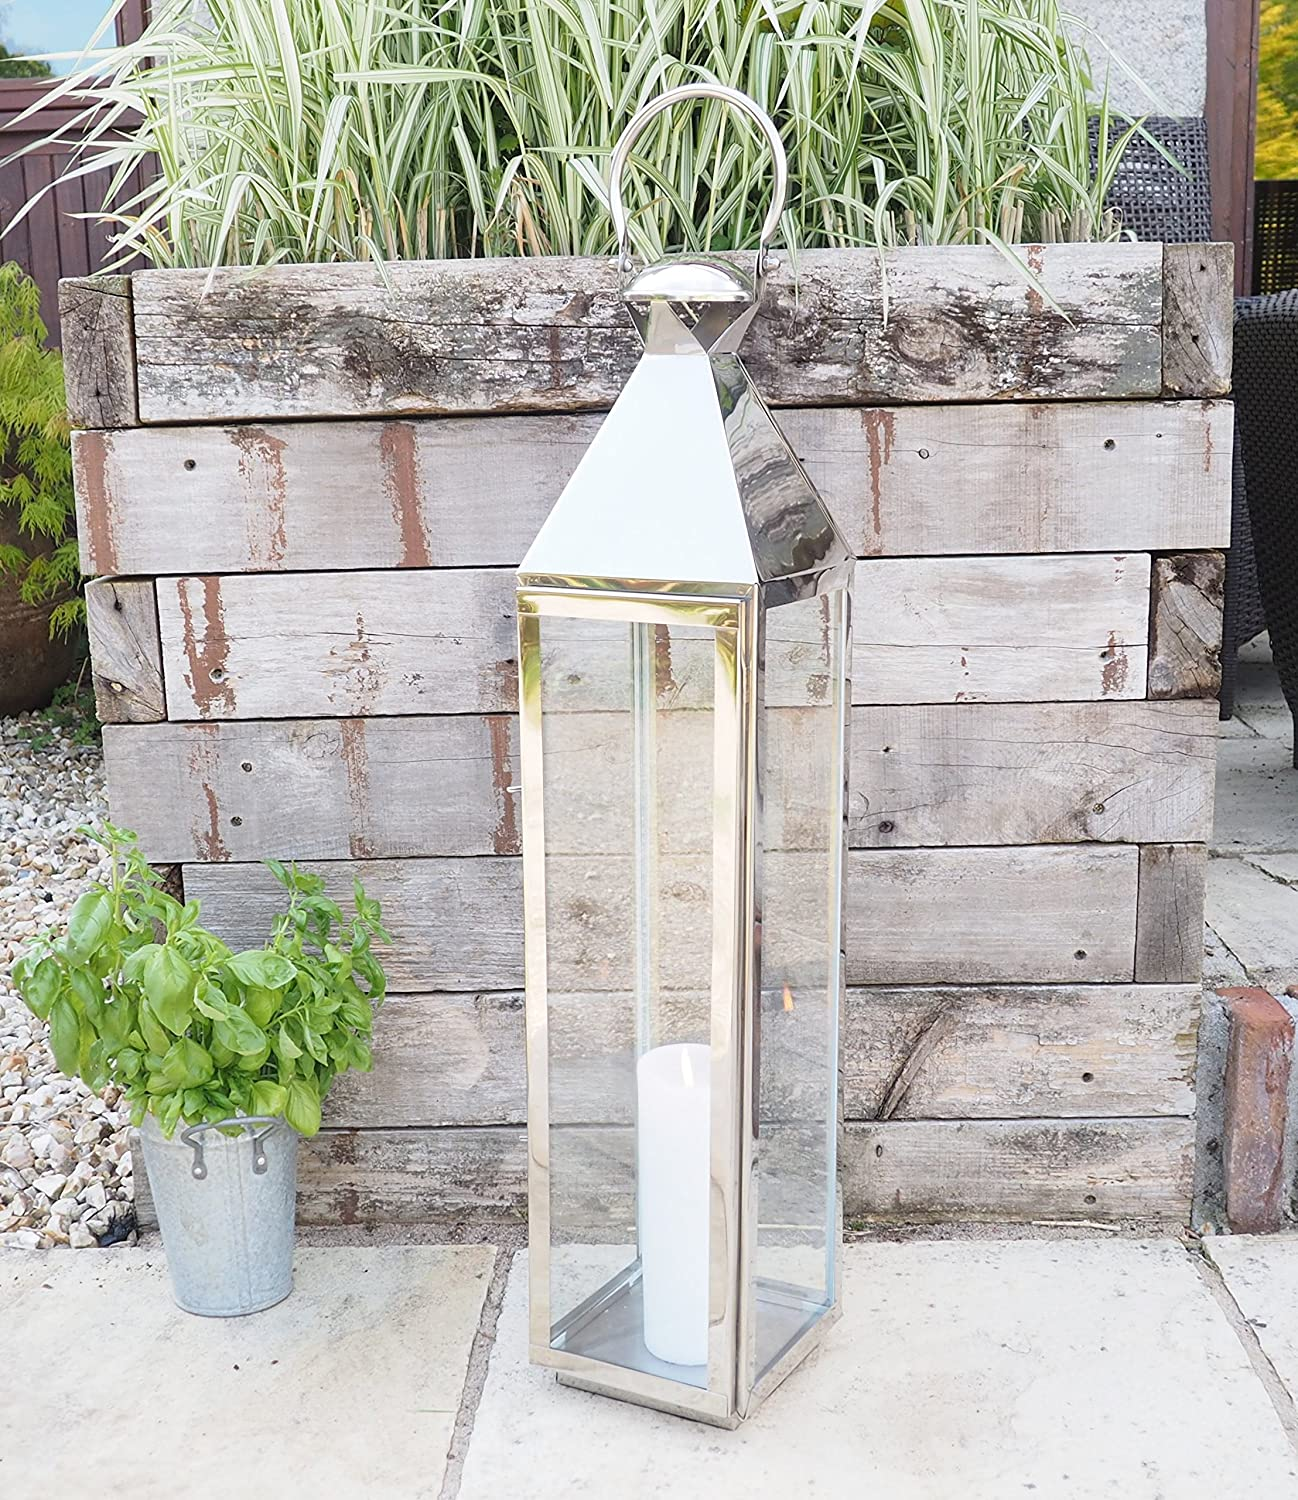 Extra Tall Stainless Steel Candle Lantern - High Grade Metal for Outdoor Use - Garden Wedding Patio Hotel - 85cm H Za Za Homes